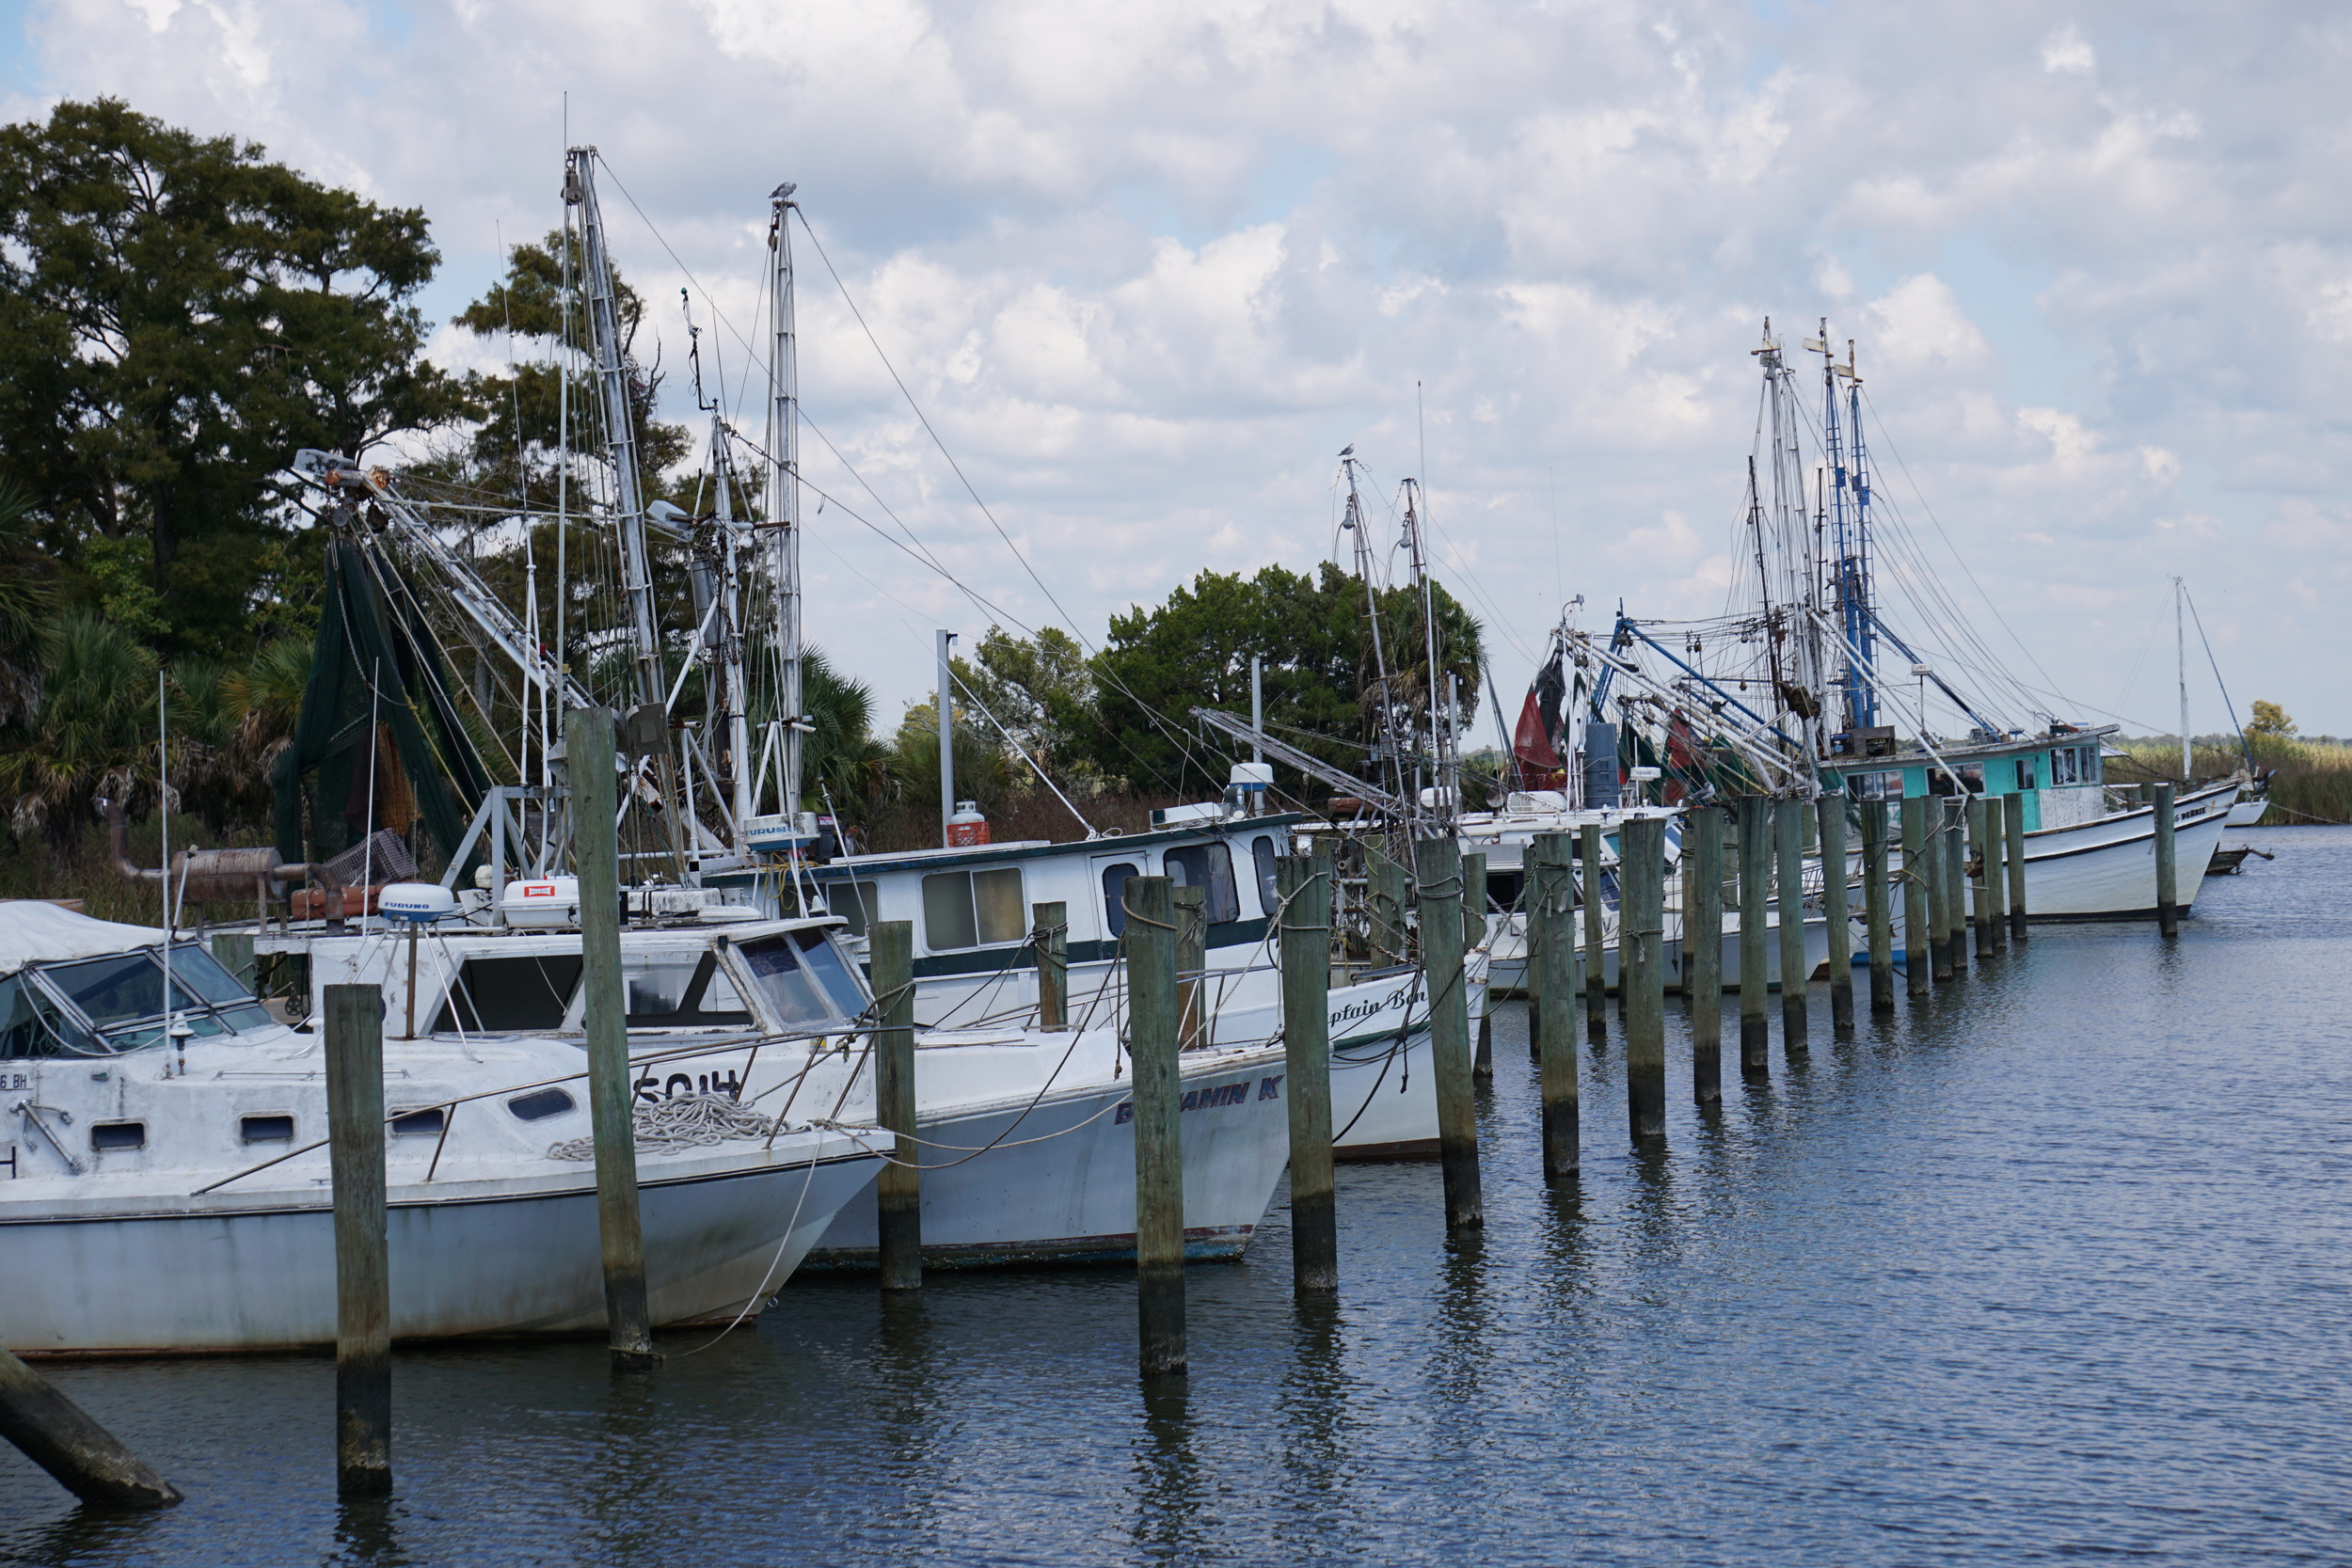 Seafood workers' boats along Apalachicola Bay. Photo by Daniel Ward